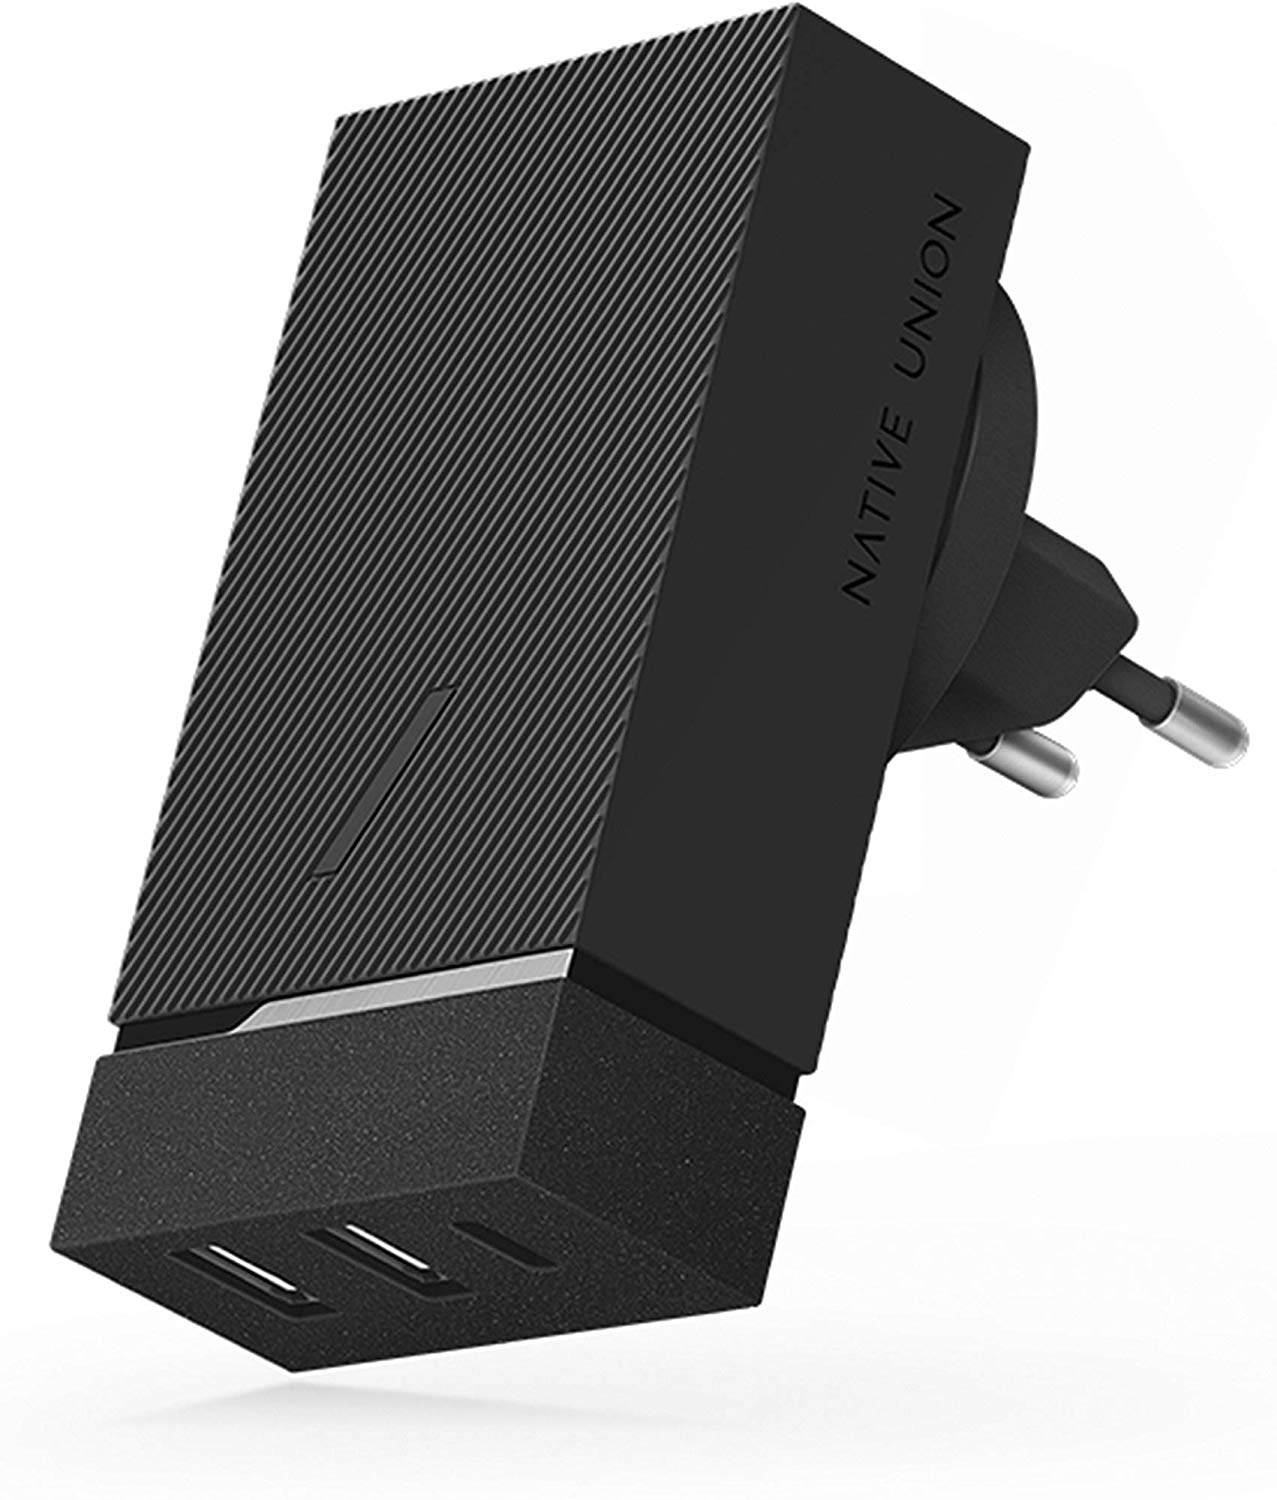 smart hub international charger